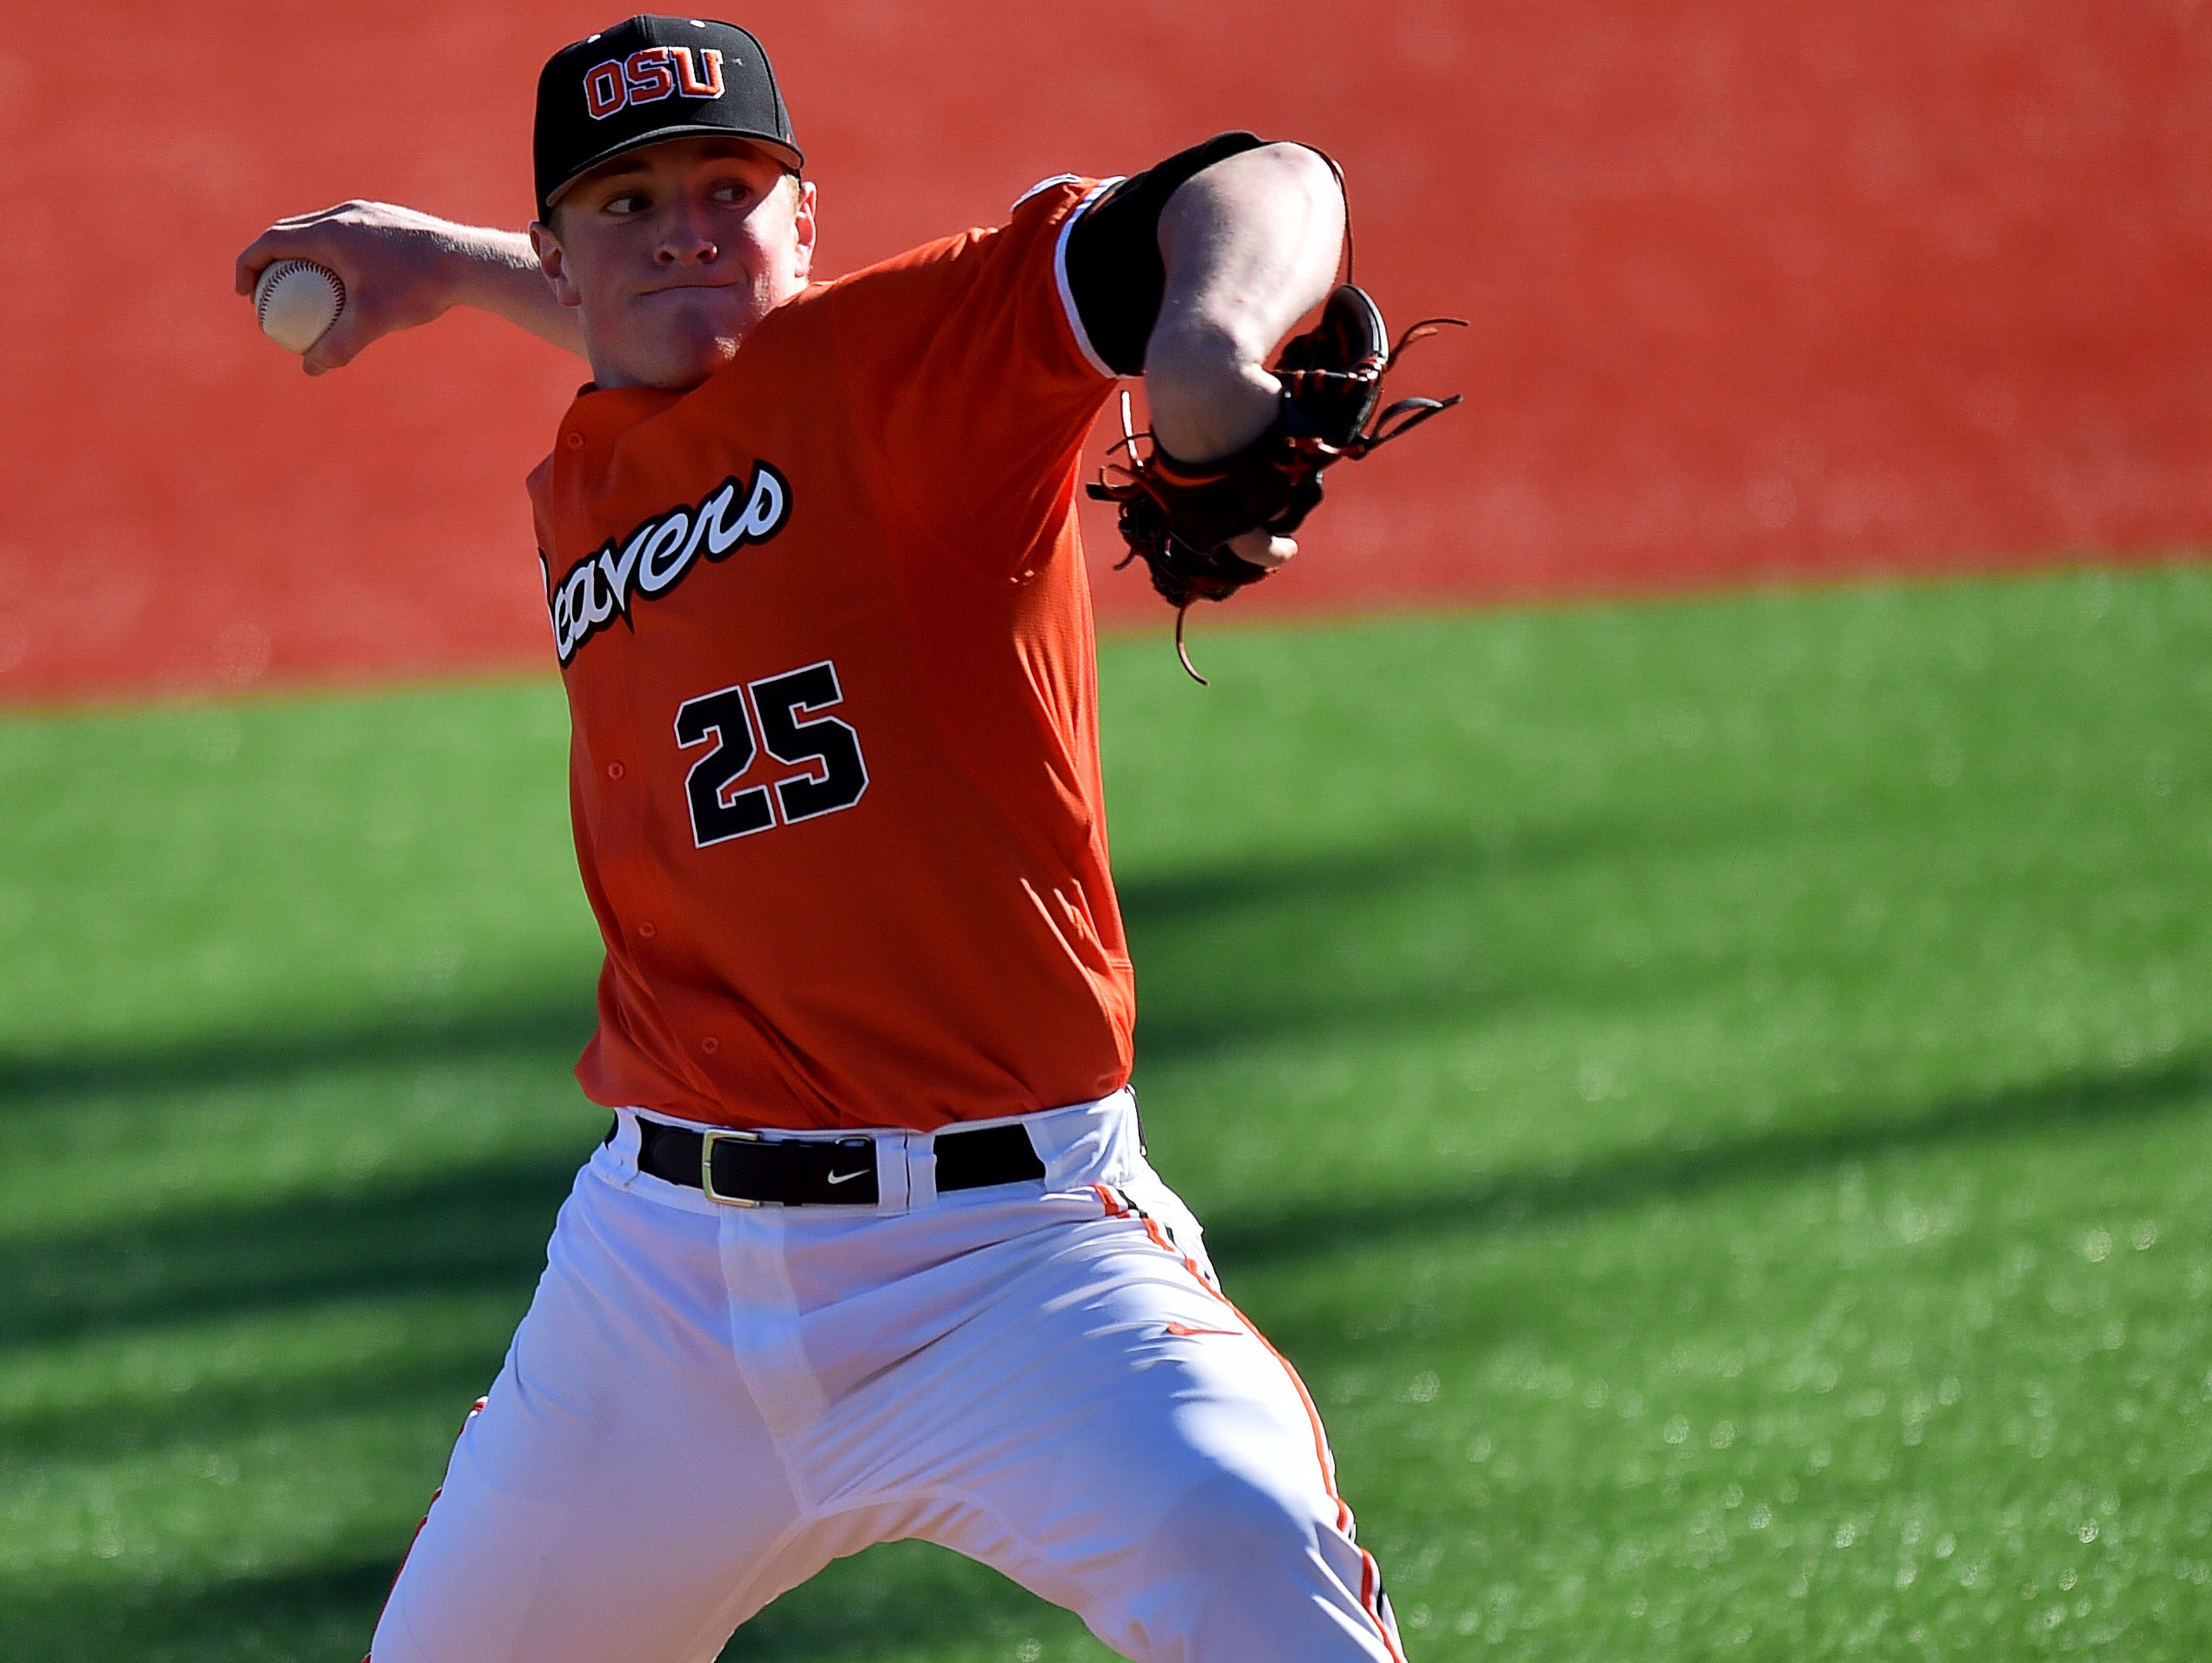 OSU right-hander Drew Rasmussen will be on the hill for Game 1 at California